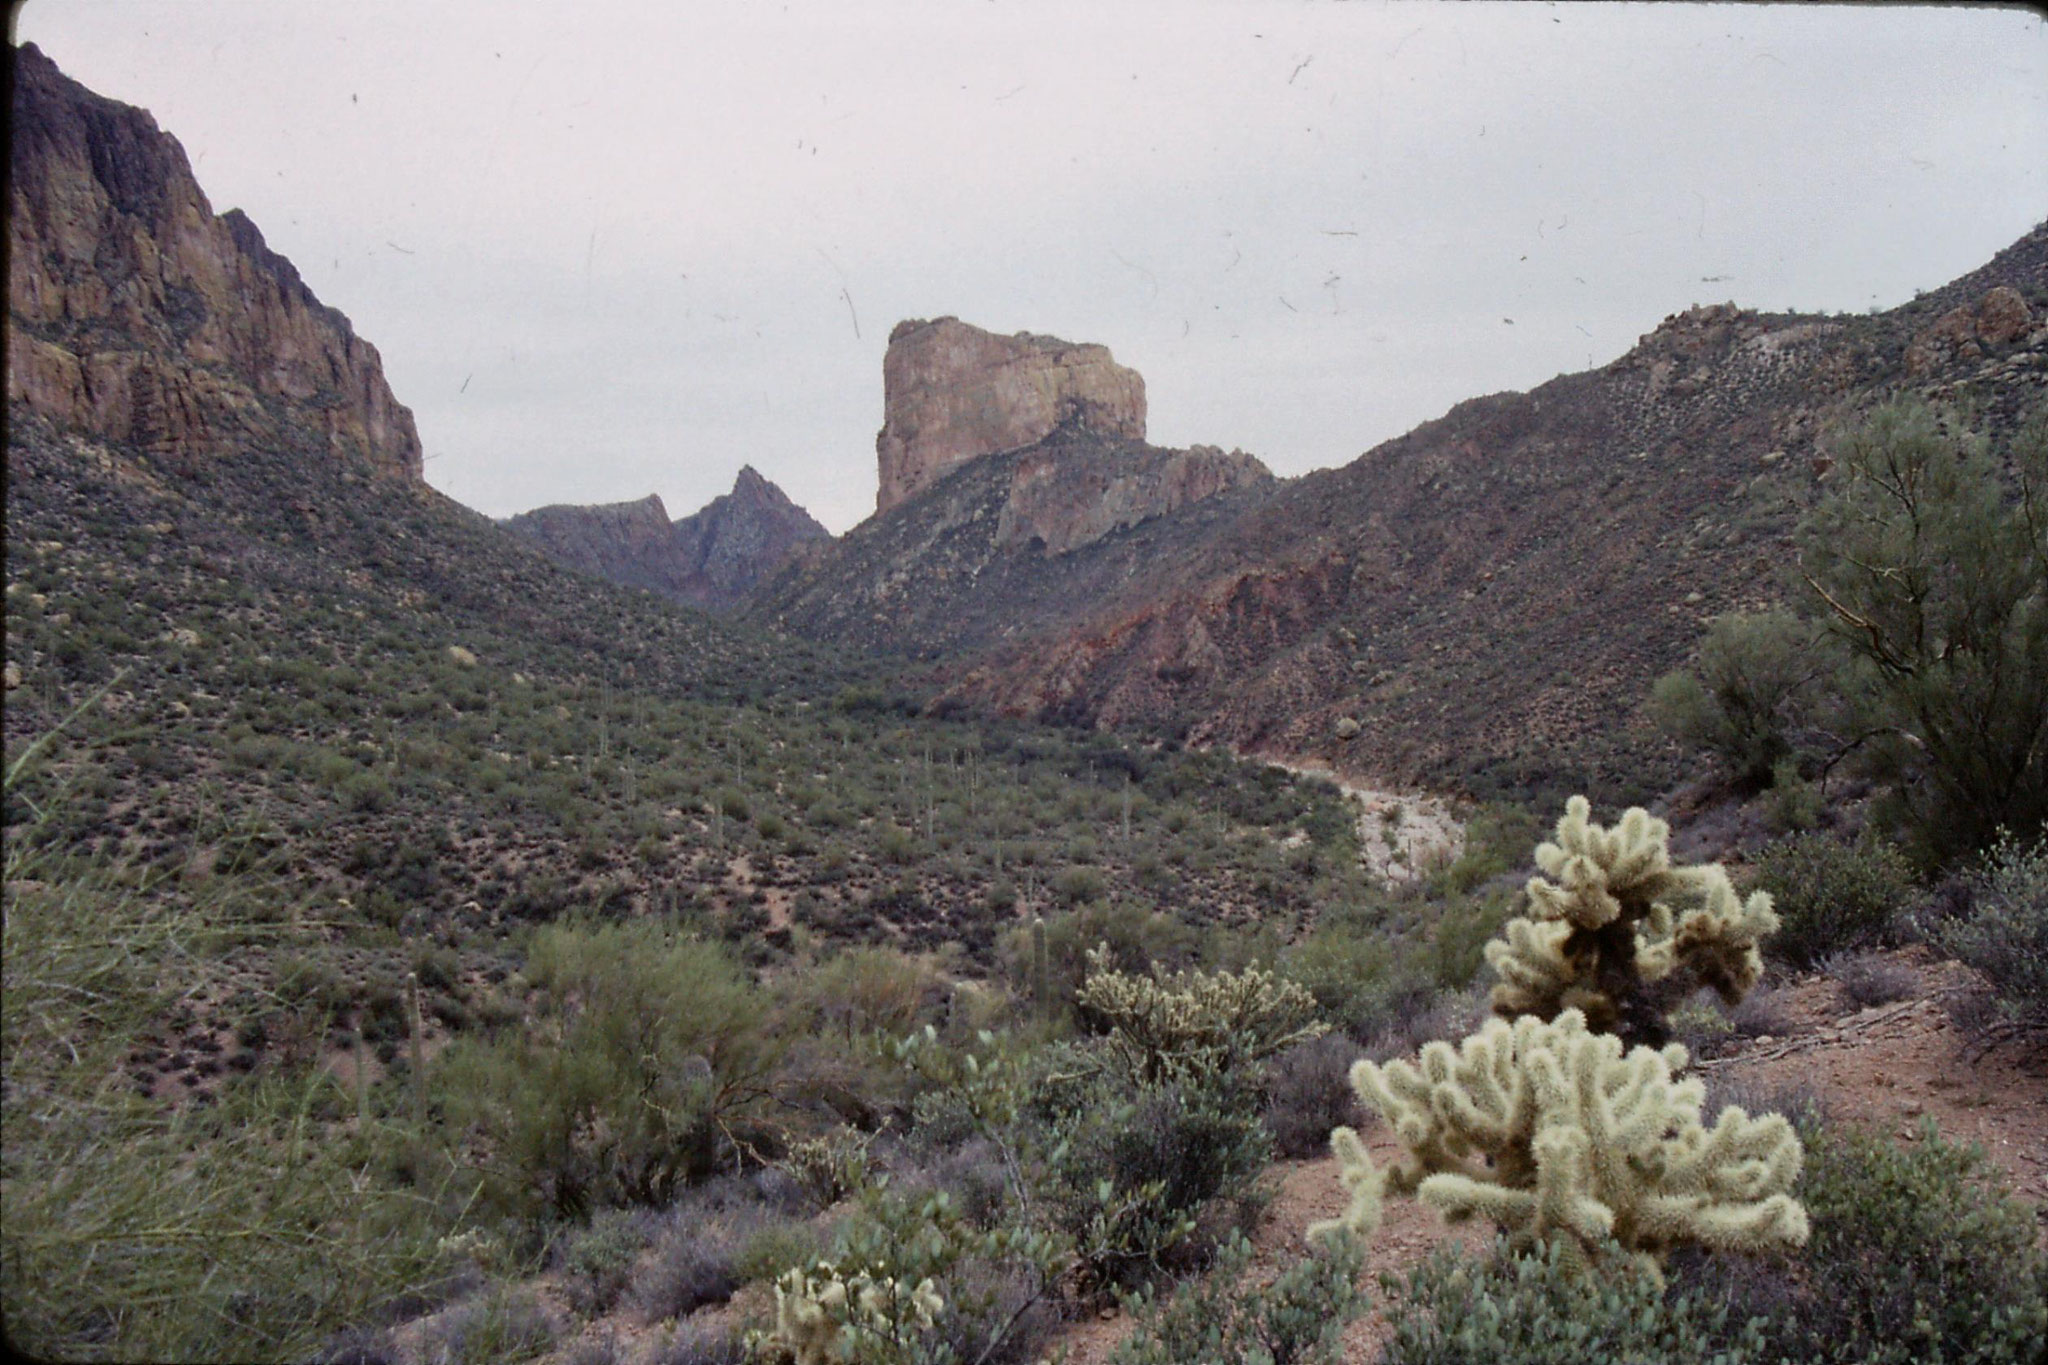 13/11/1990: 10: l to r - Geronimo Head, Battleship Mountain, Weaver's Needle, Superstition Mountain